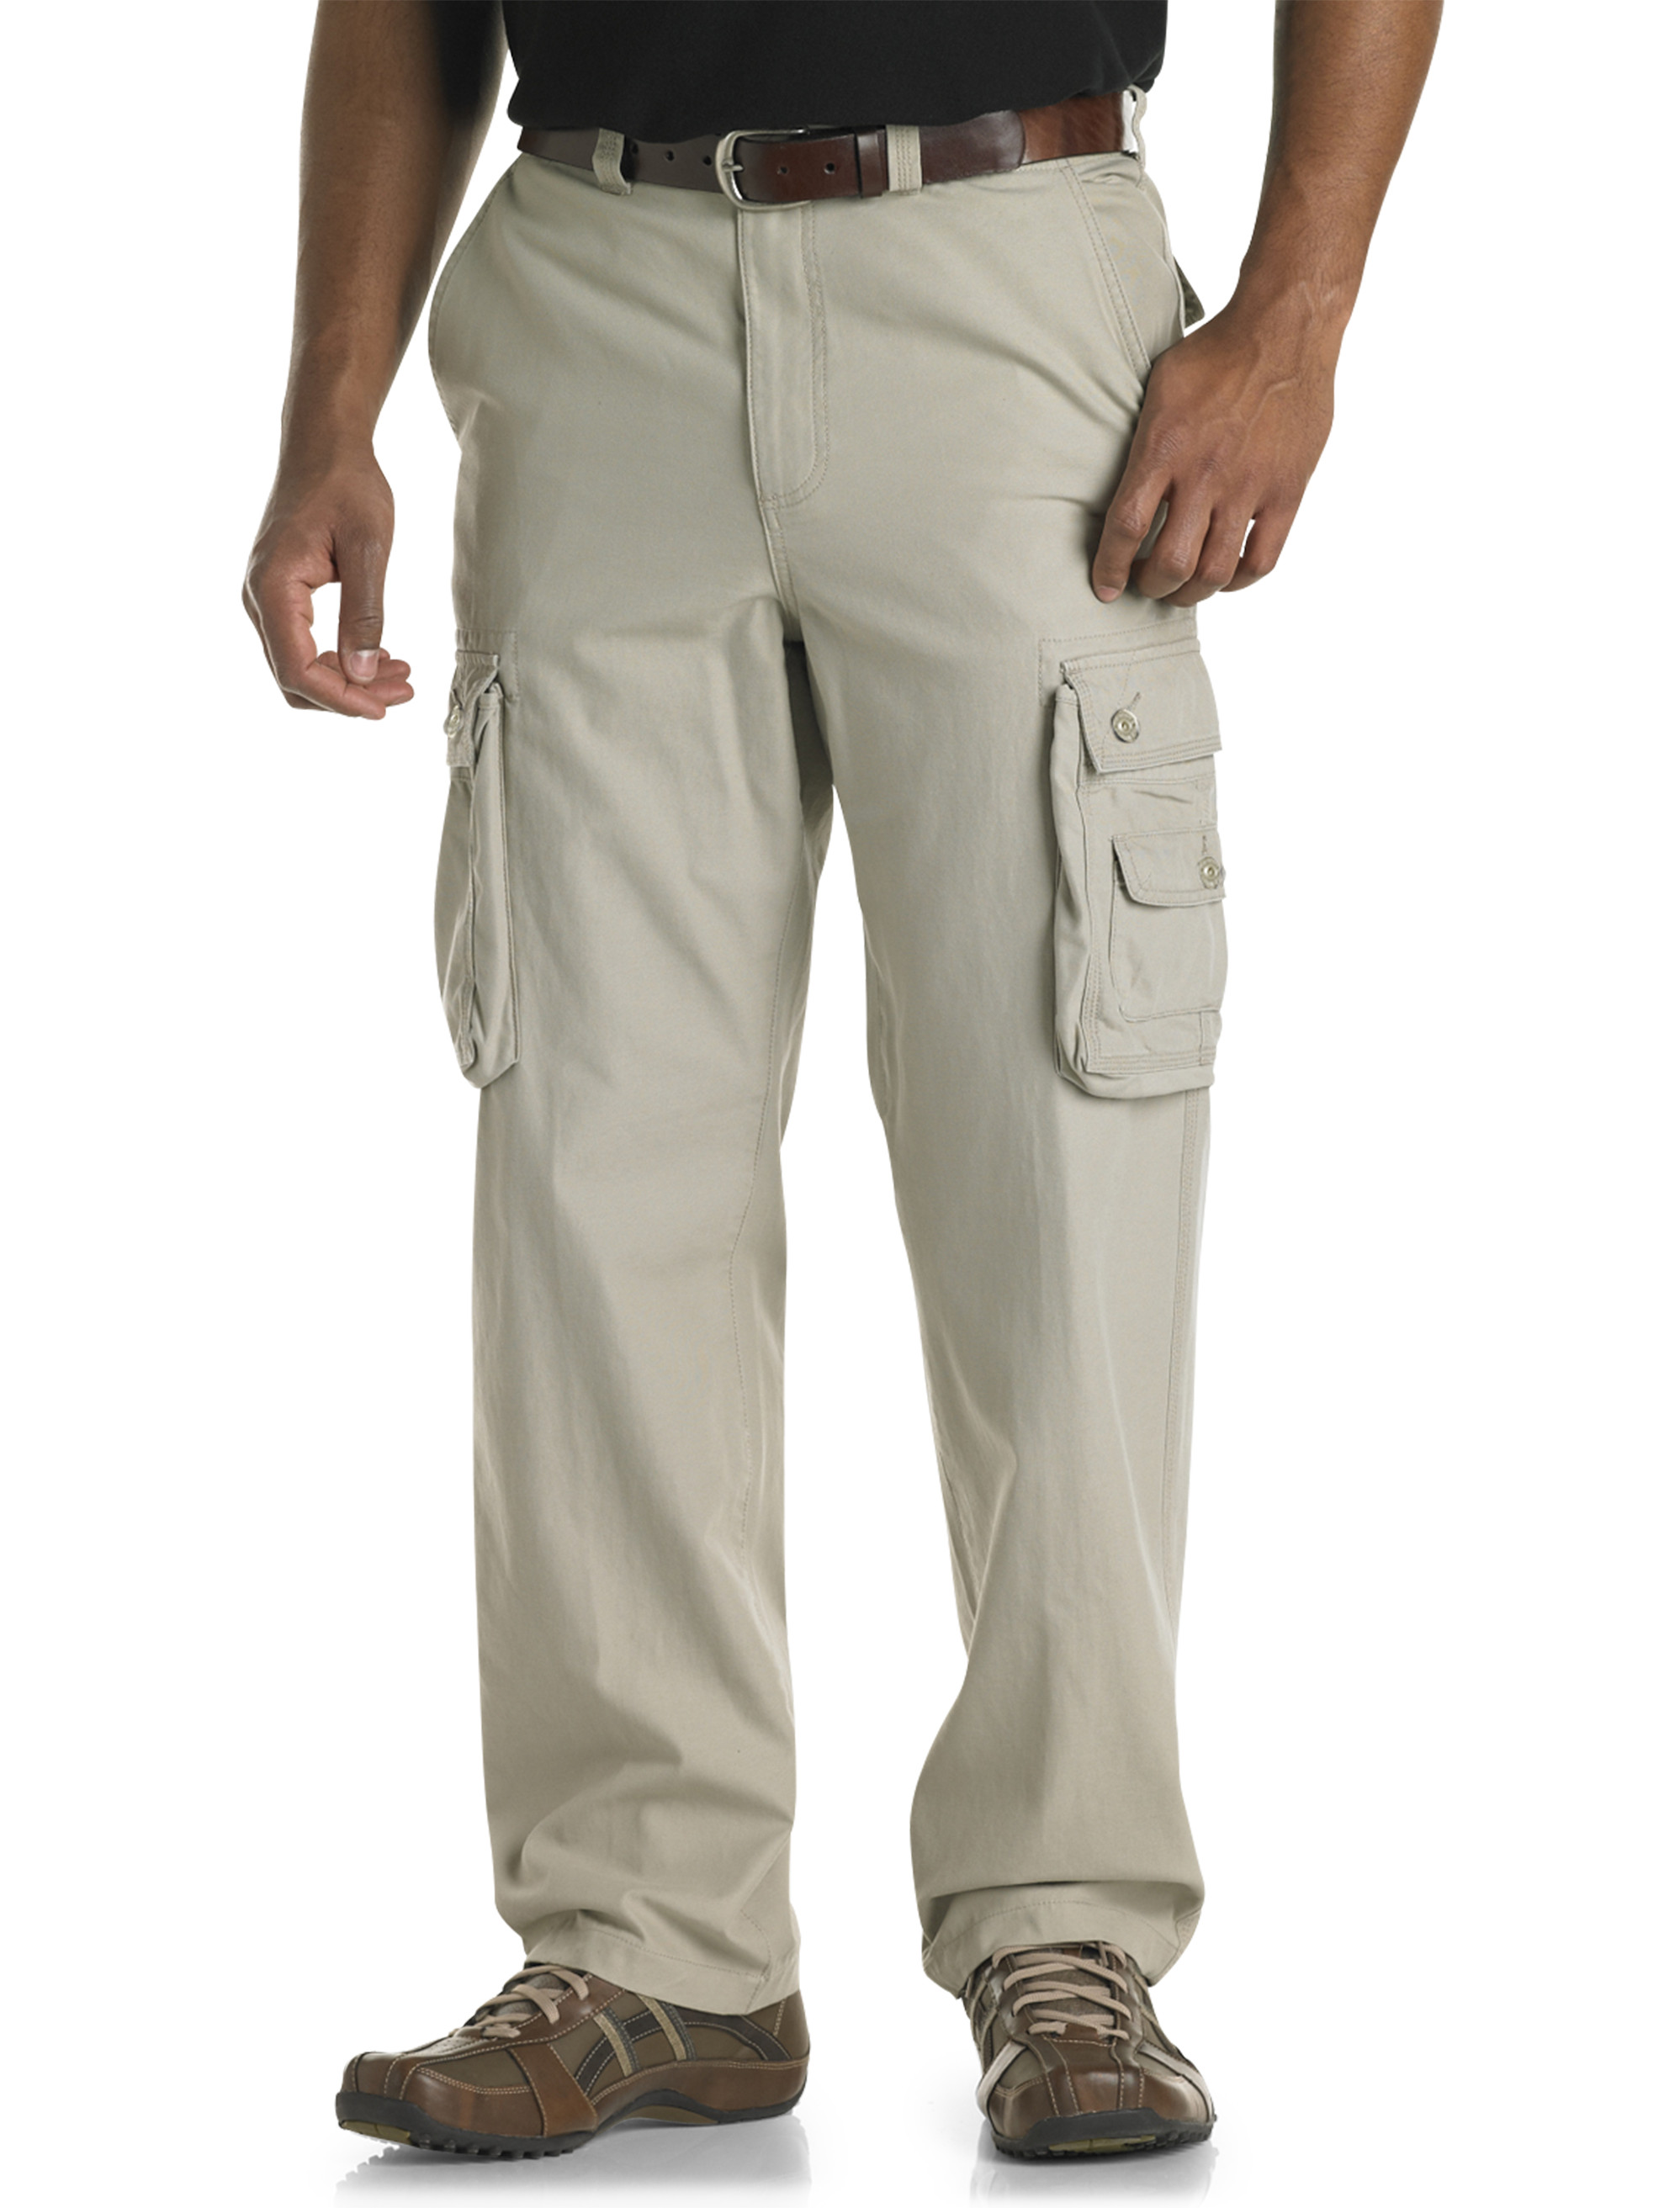 BIG & TALL CASUAL PANTS FOR MEN. A very broad category, casual pants can be considered any pair of pants that are not dress pants. This department contains everything from the ubiquitous denim jeans to five-pocket pants, chinos, sweatpants, and more situational garments like performance golf pants or drawstring linen pants.